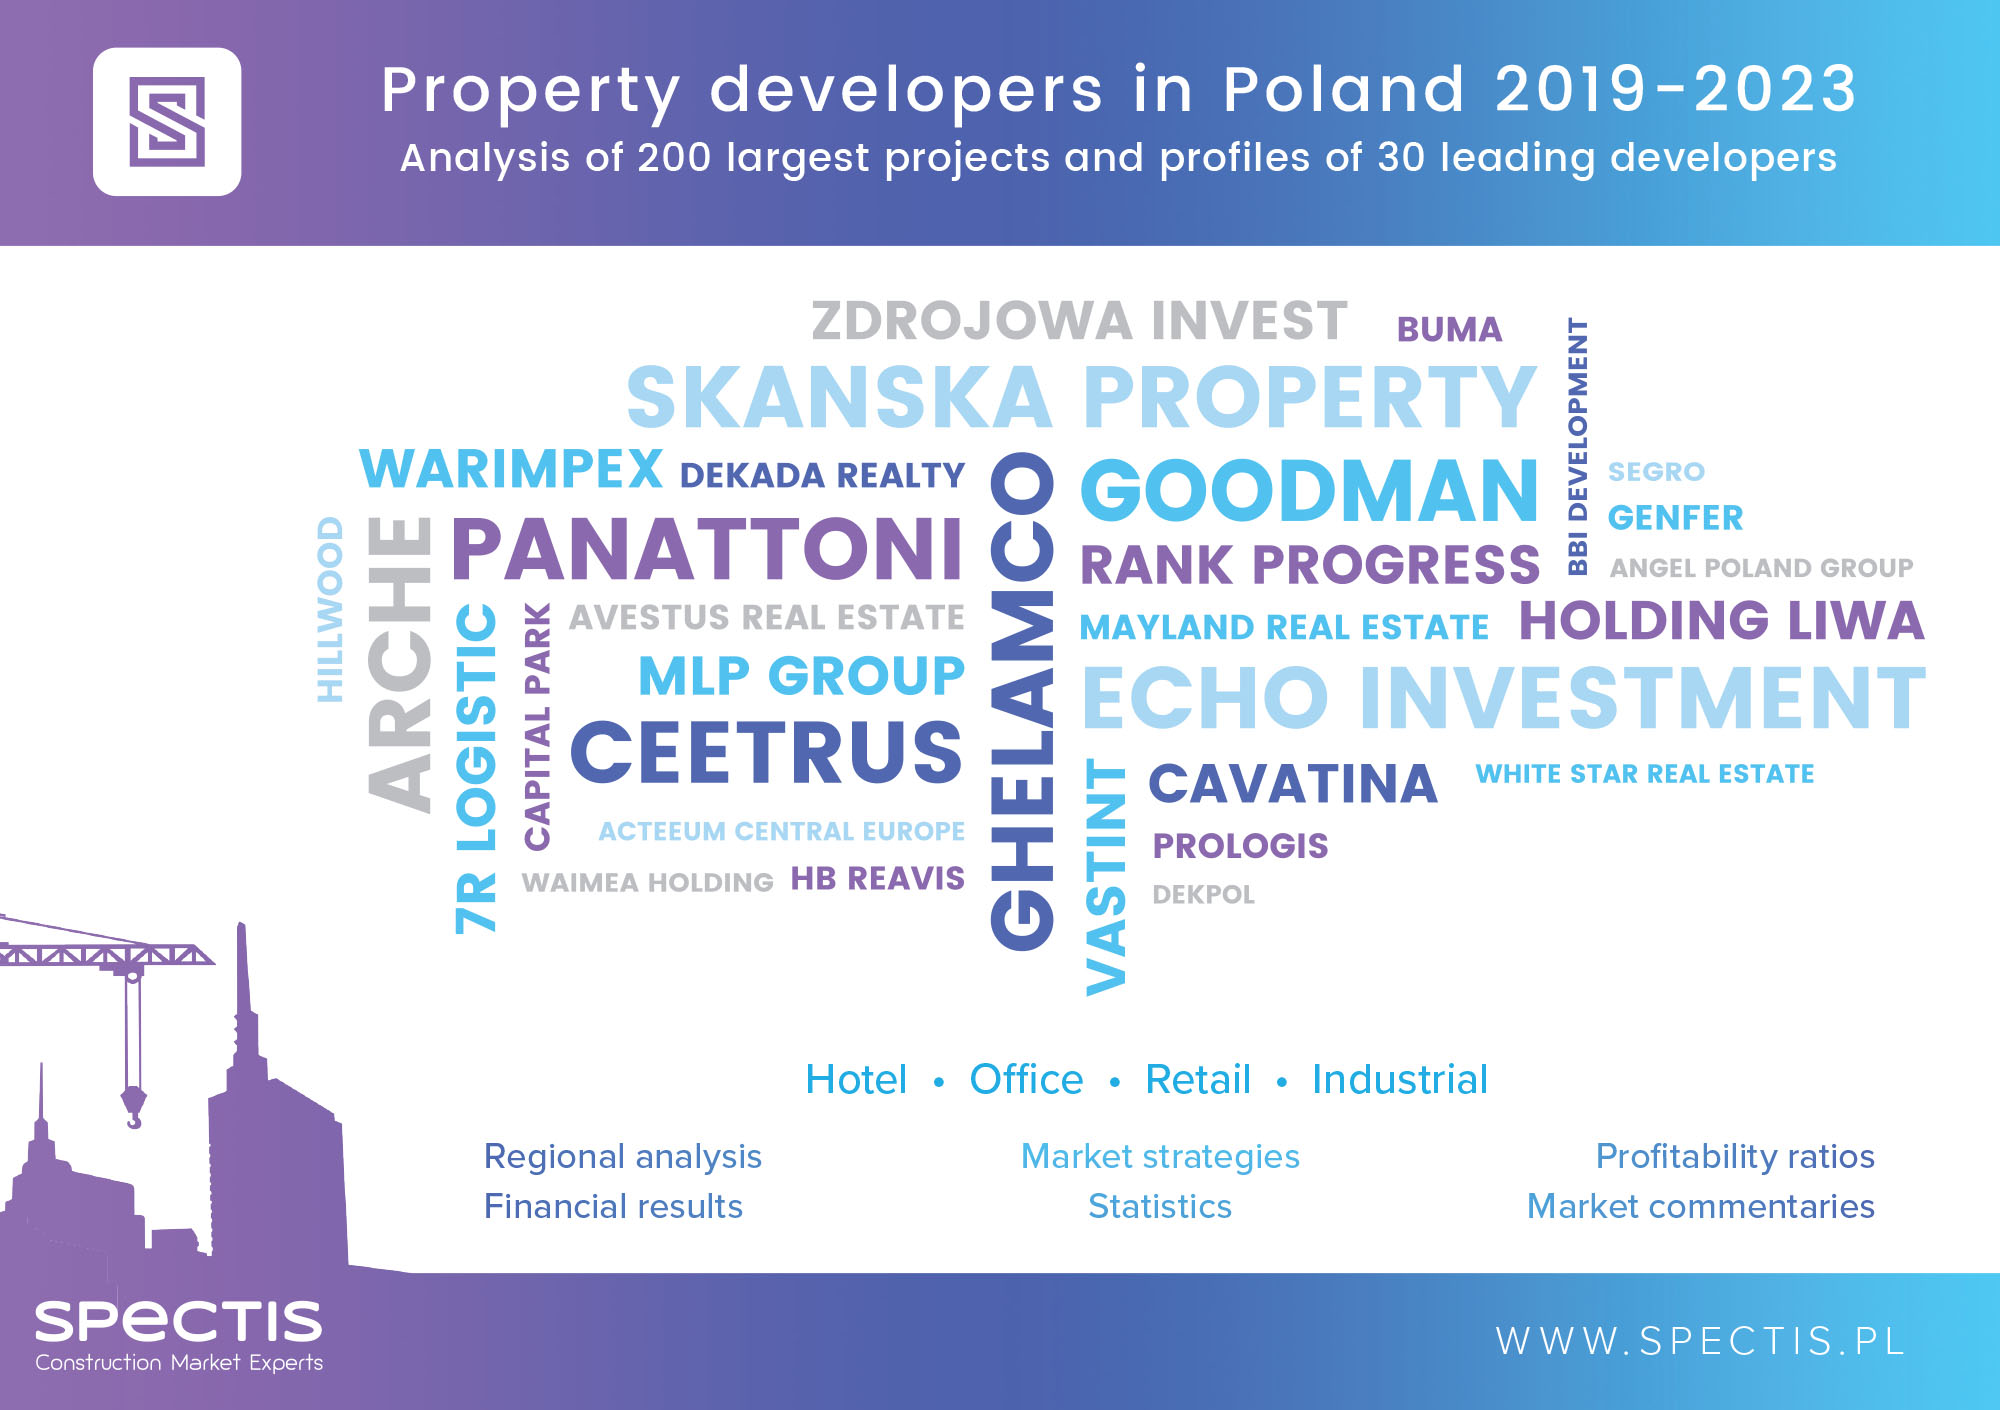 Projects of top 30 property developers in Poland worth nearly €10bn